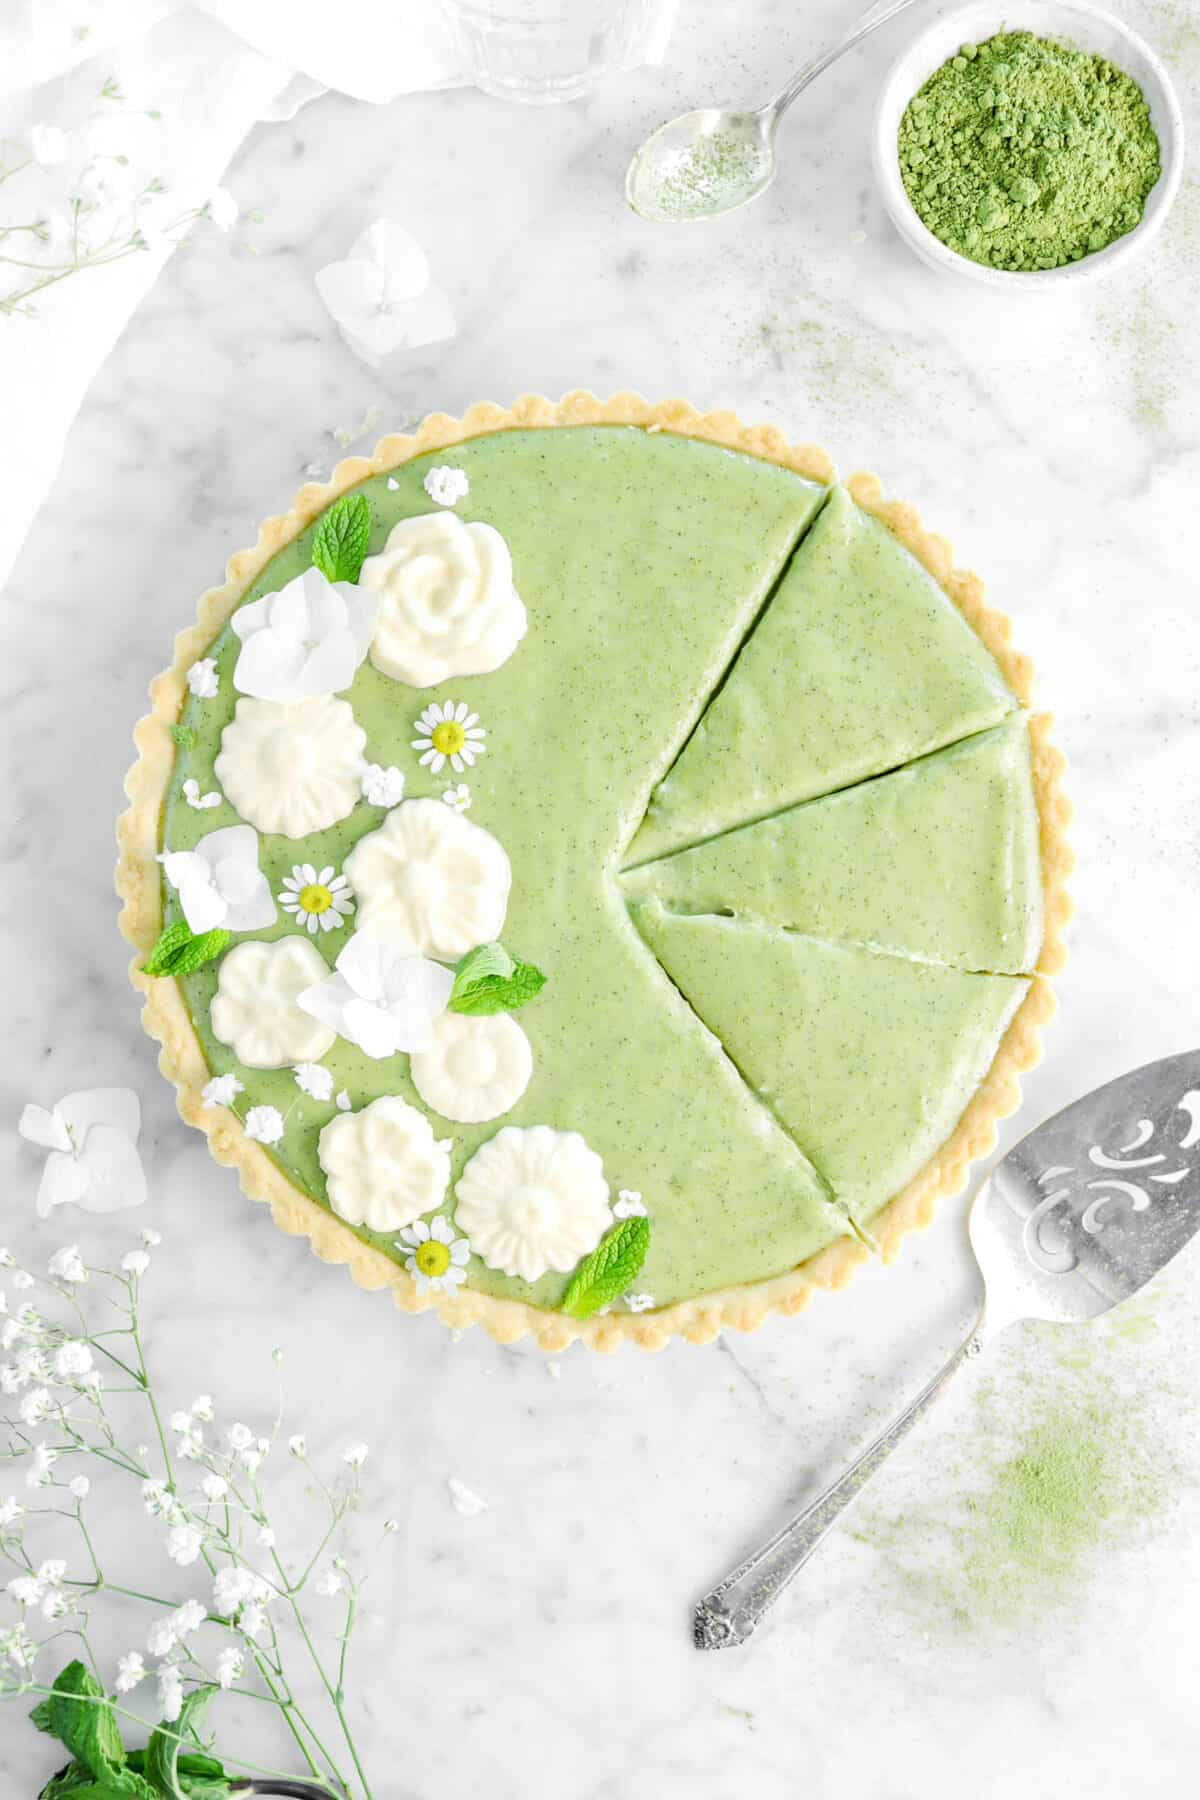 matcha tart with three slices cut into it, fresh flowers, mint leaves, bowl of matcha powder, a spoon, and a cake knife next to the slices